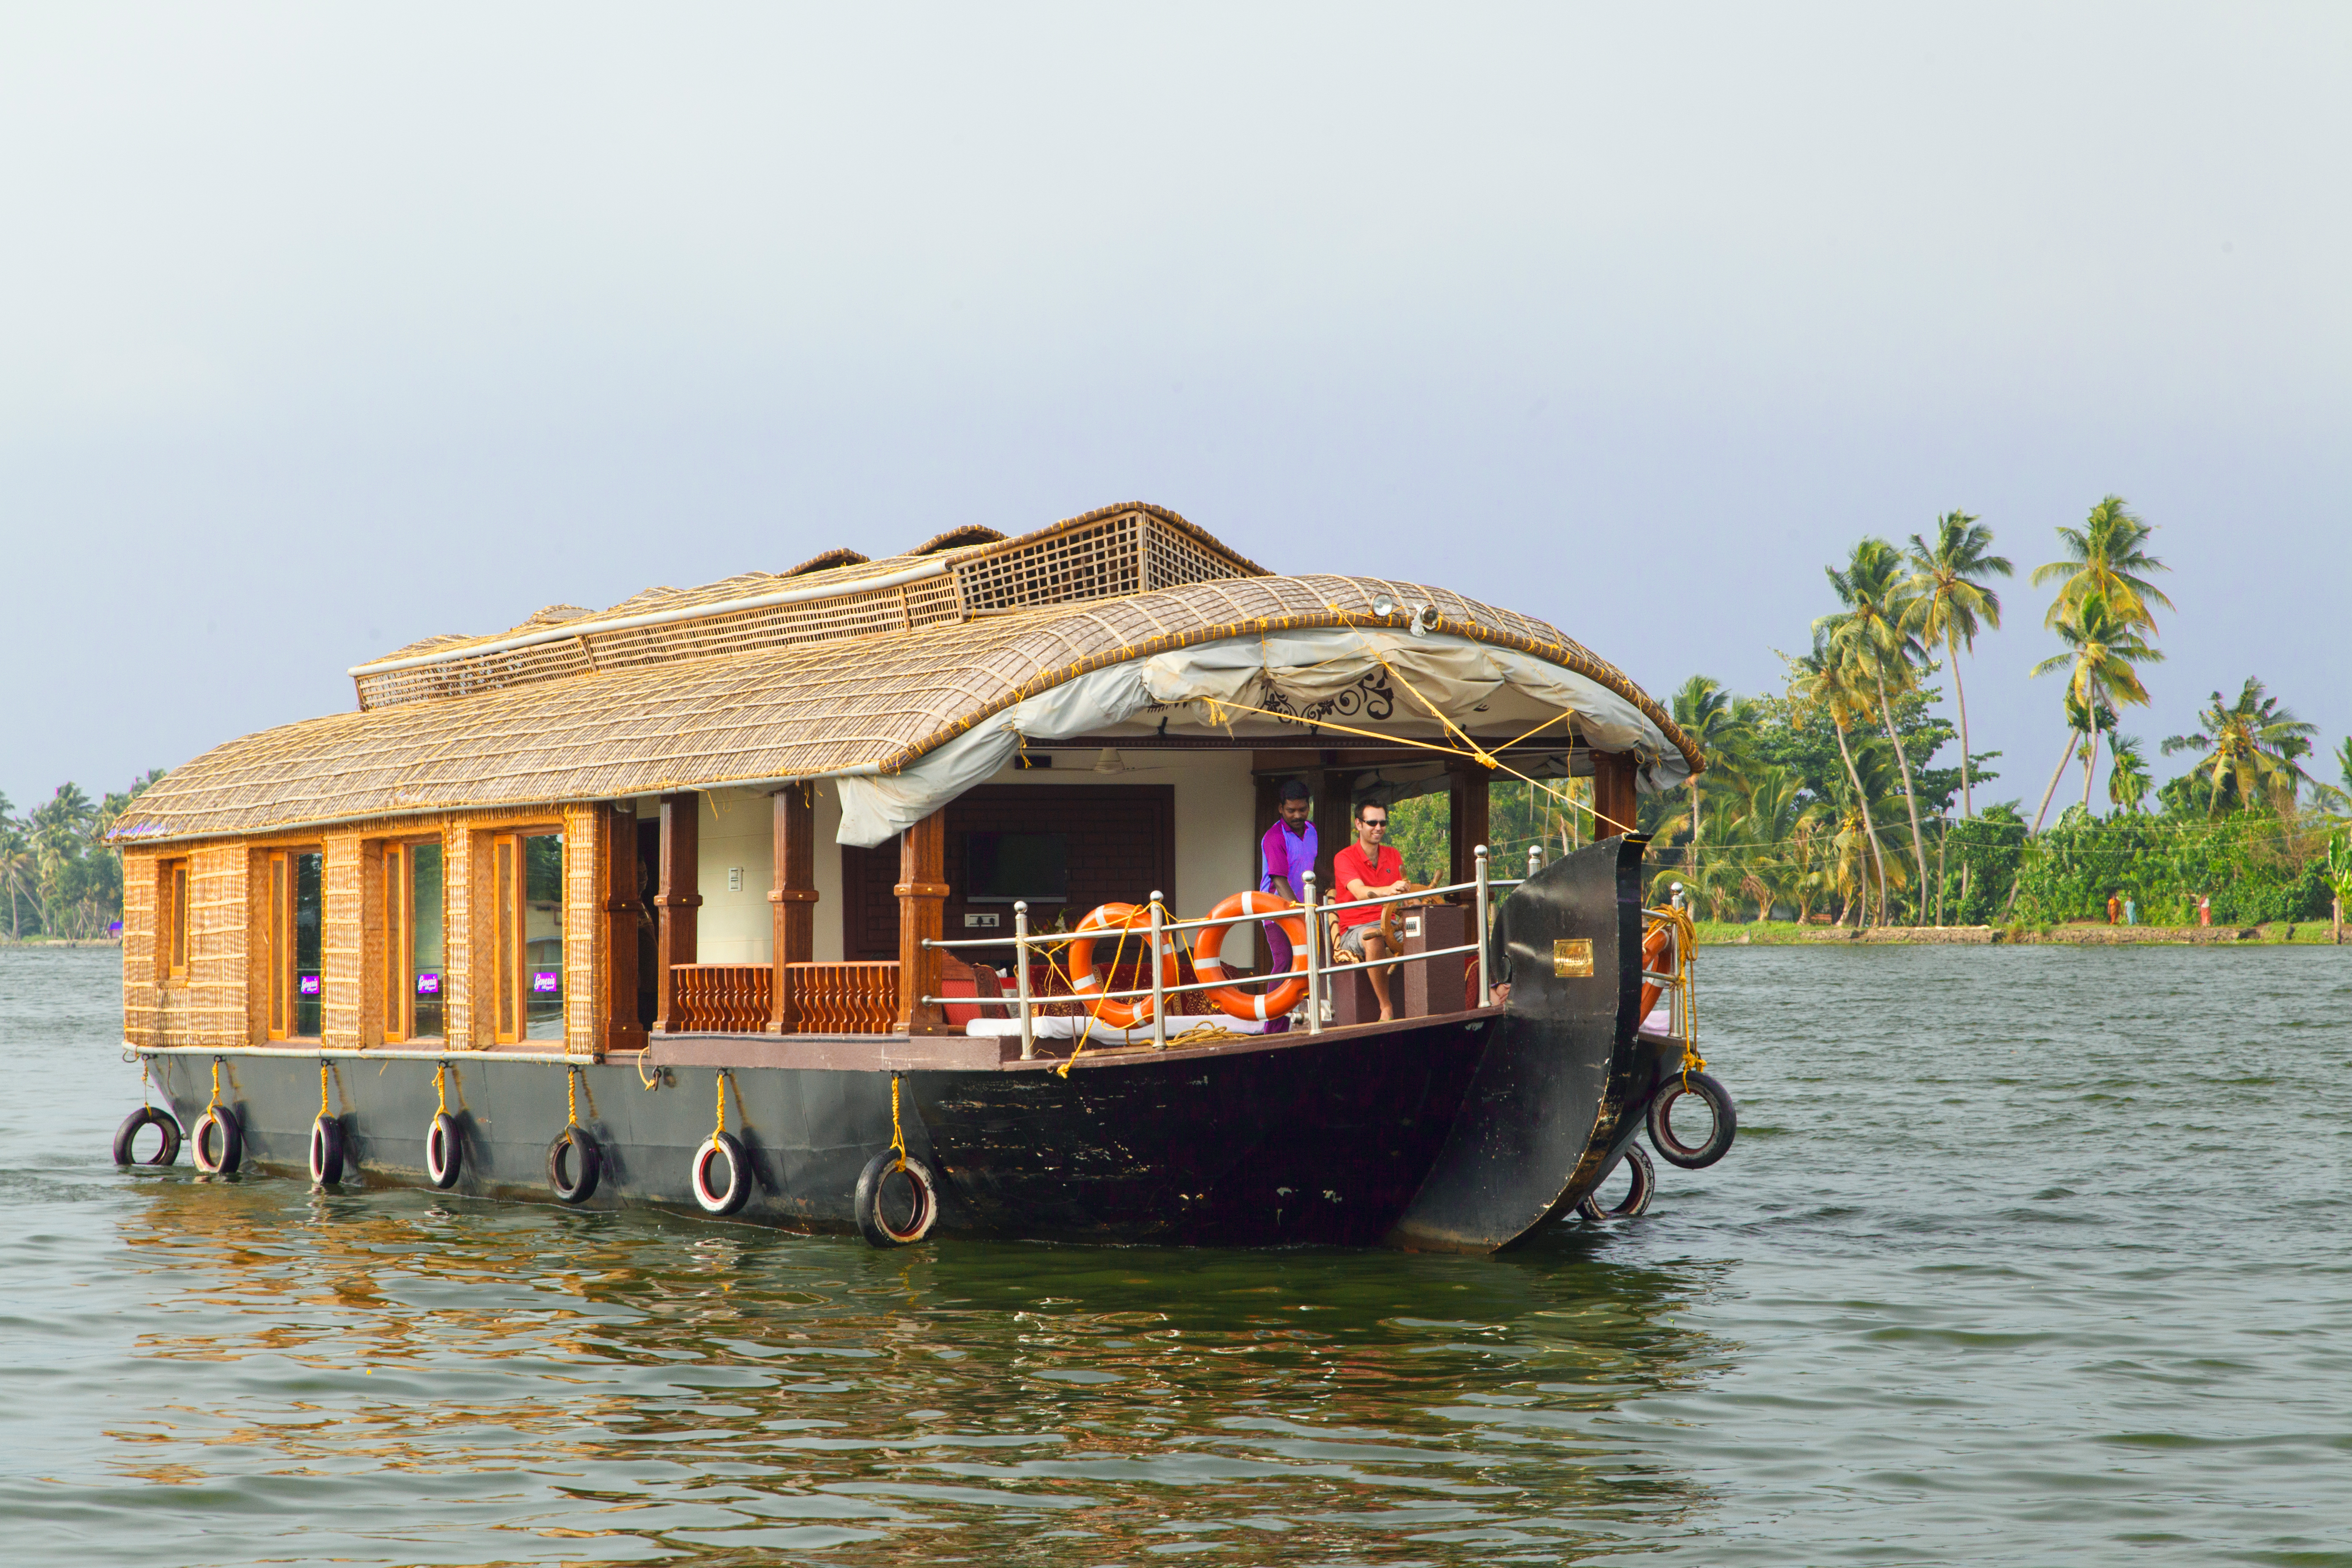 The best Houseboat service in Alleppey (Alappuzha), Kerala boat rentals Kerala Alleppey (Alappuzha) Kerala